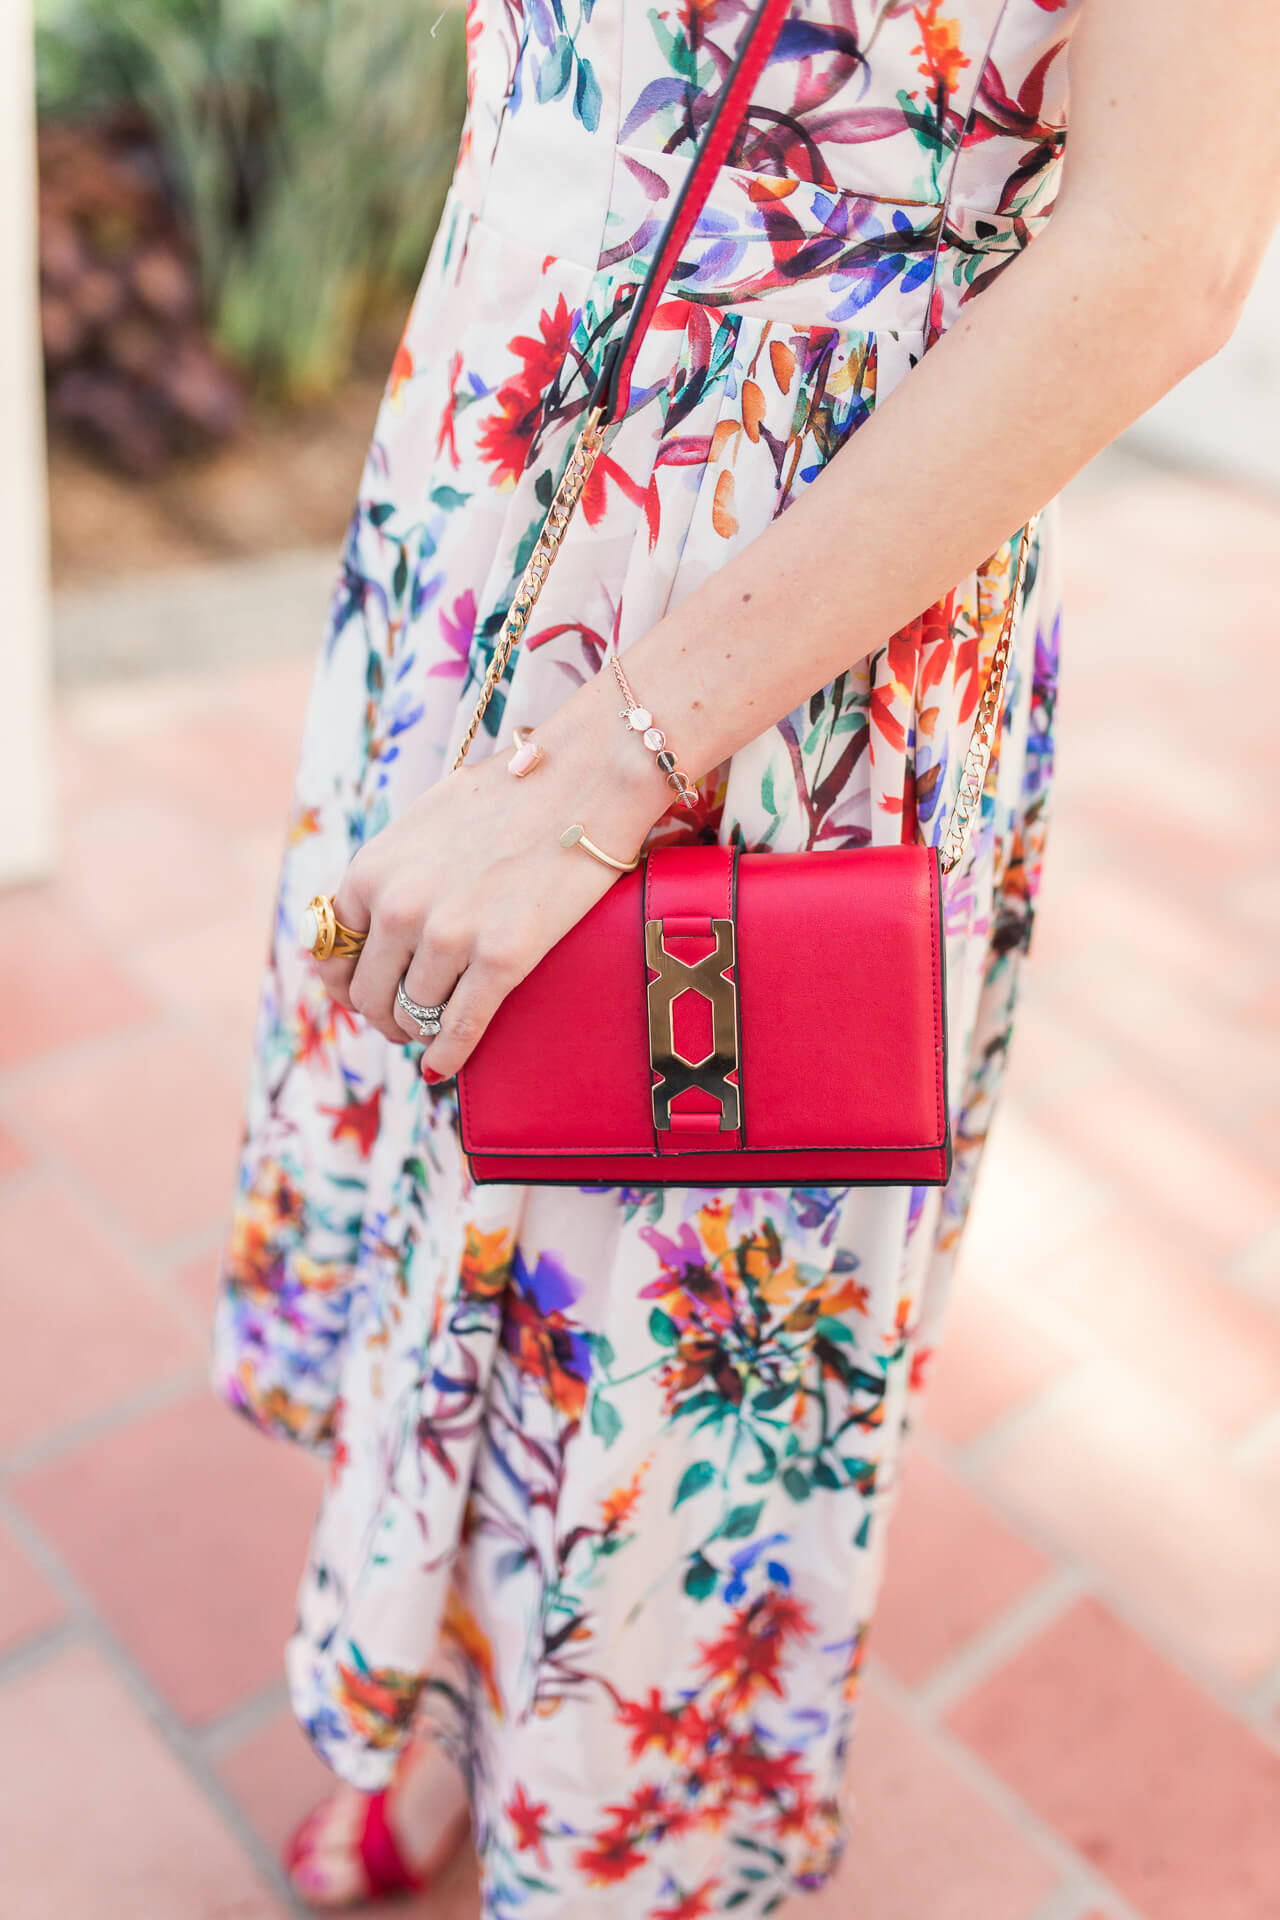 the cutest small red bag that is so affordable!